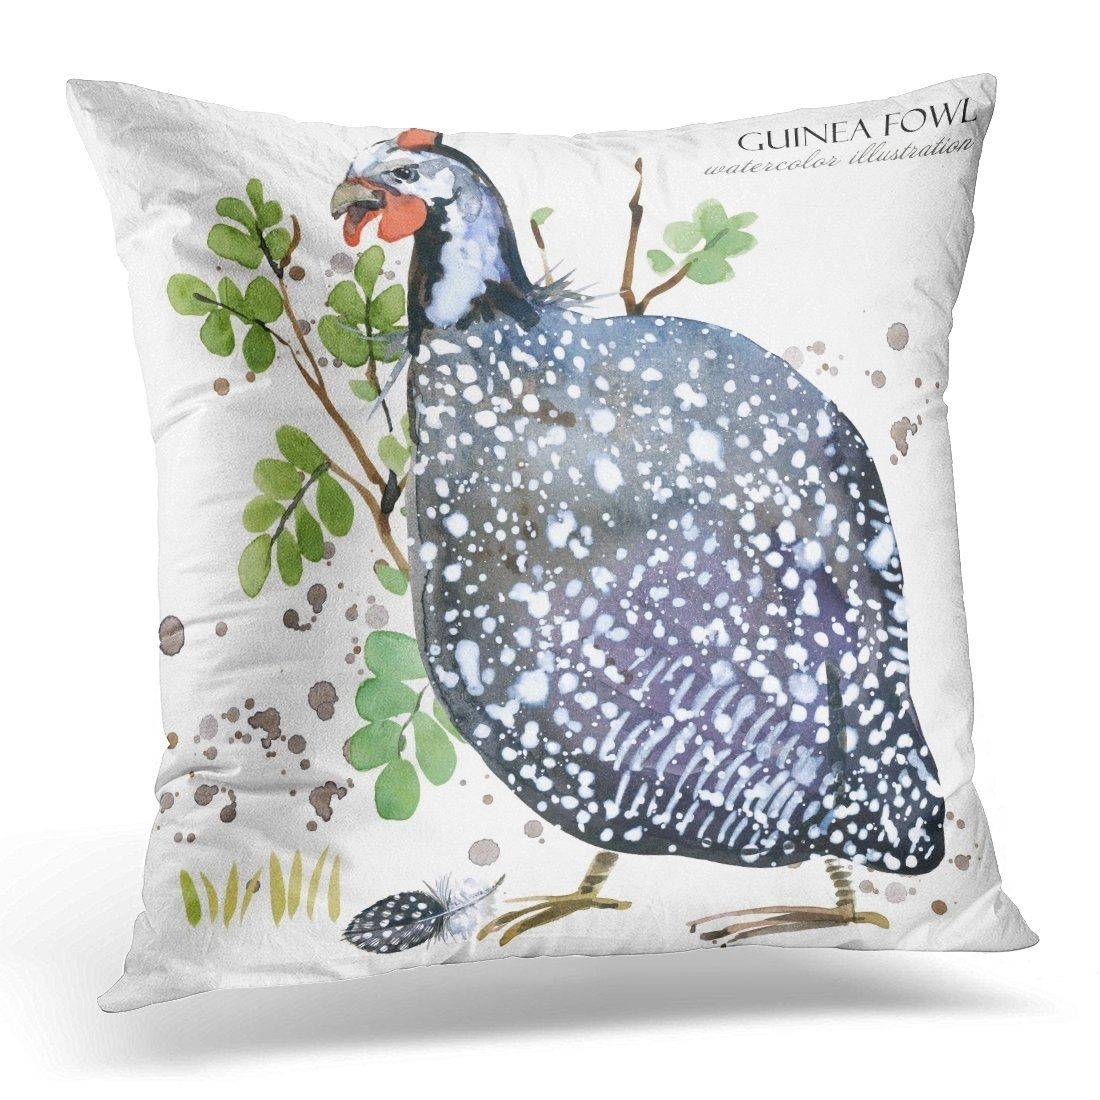 Black Africa Guinea Fowl Bird Watercolor Blue Animal Pillow Cover 16x16